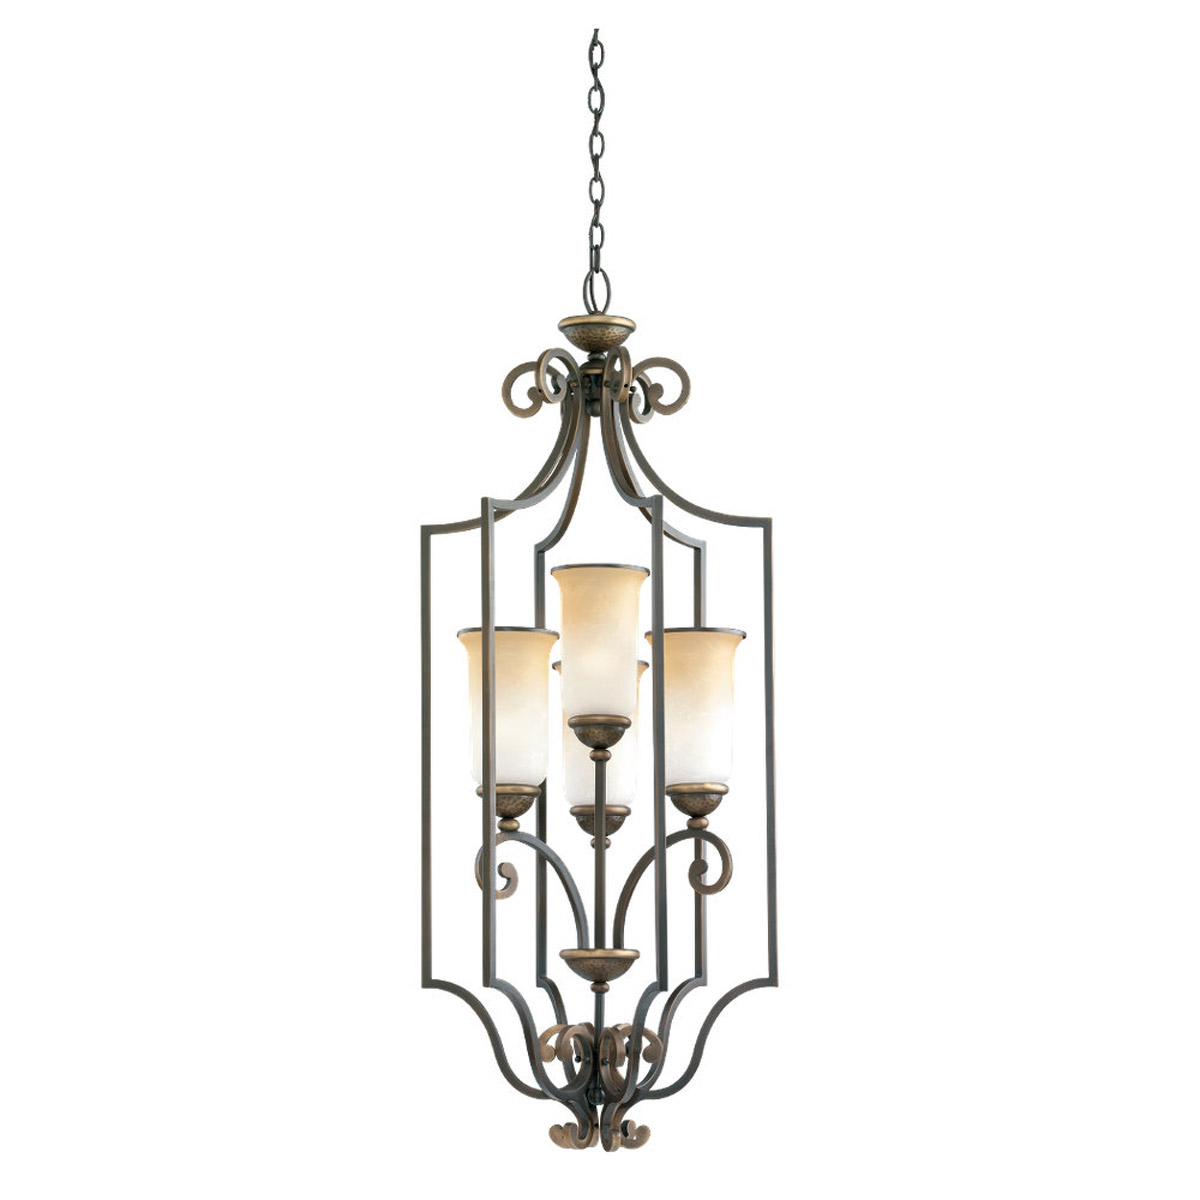 Sea Gull Lighting Brandywine 4 Light Hall / Foyer Pendant in Antique Bronze 51431-71 photo